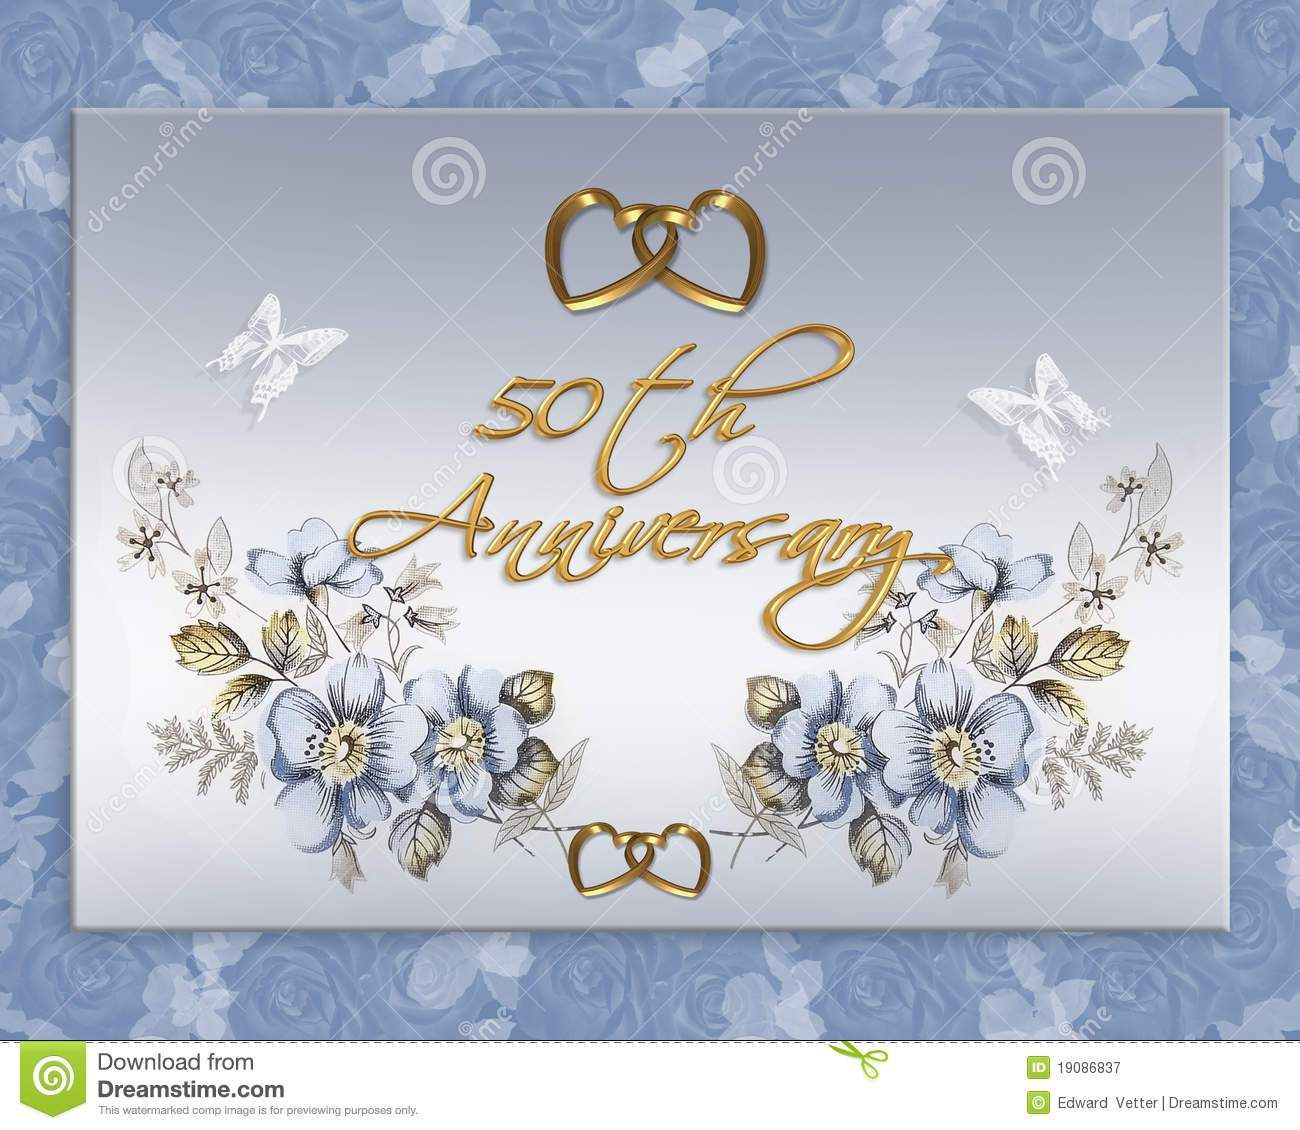 50th Wedding Anniversary Quotes: 50th Wedding Anniversary Quotes